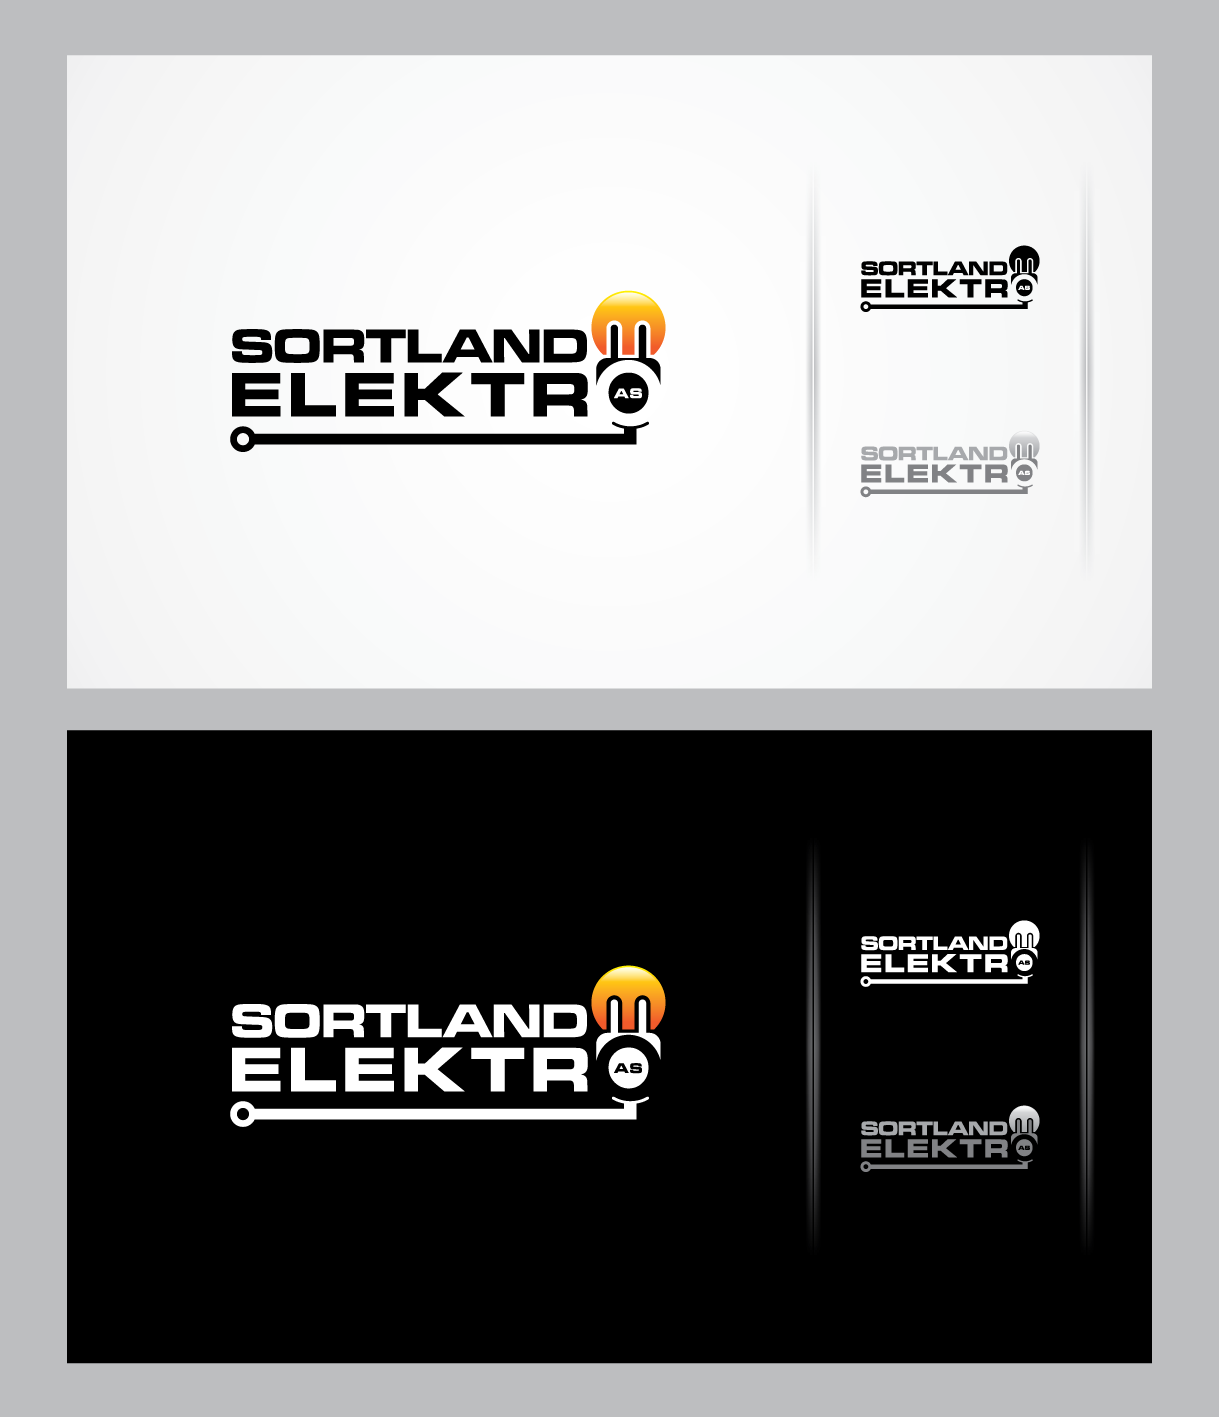 Help Sortland Elektro AS with a new logo